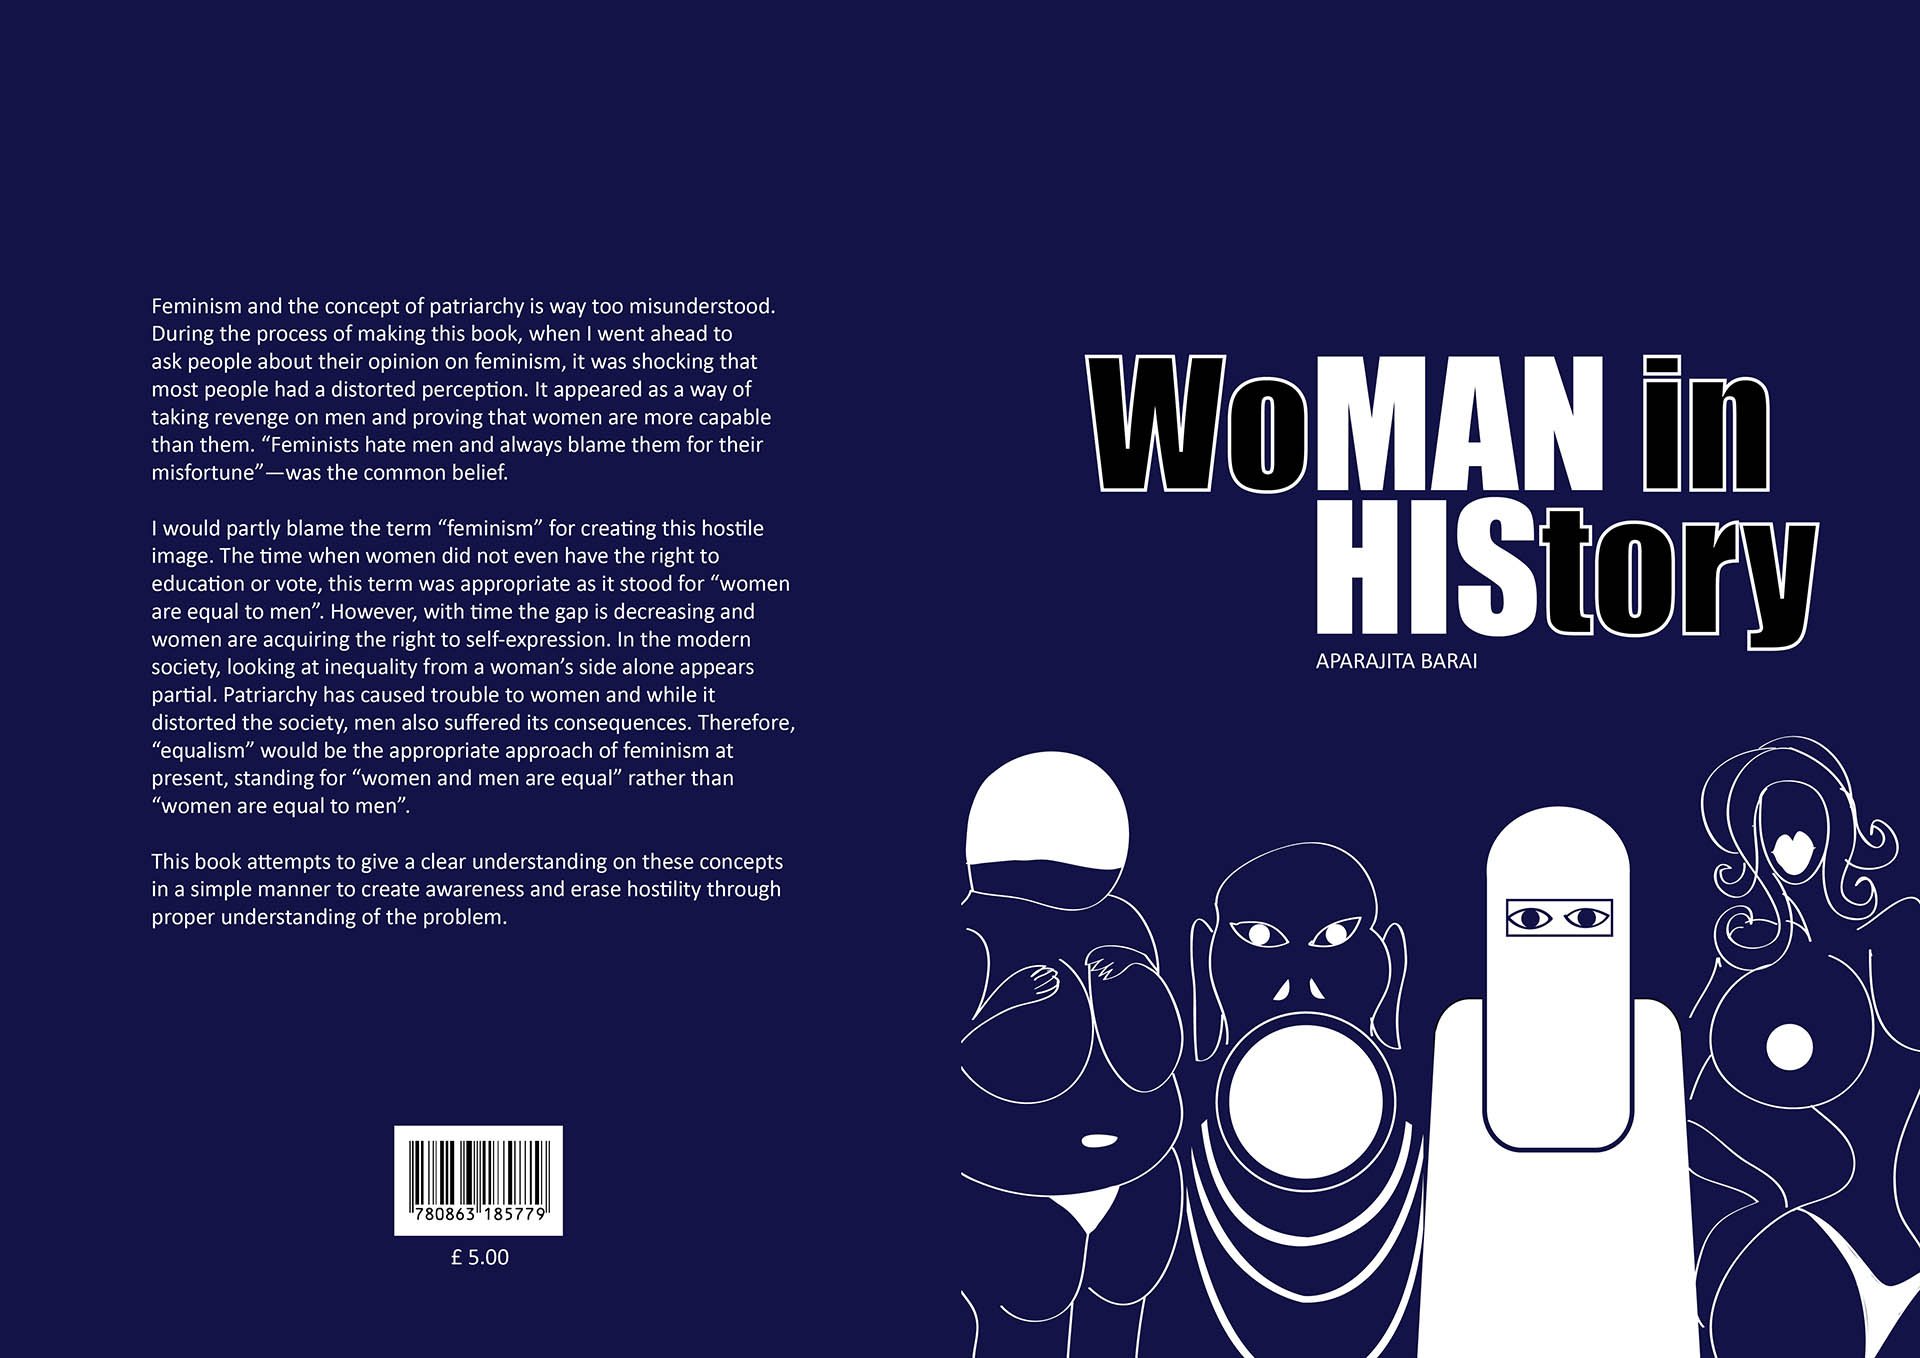 Book cover for Woman in history